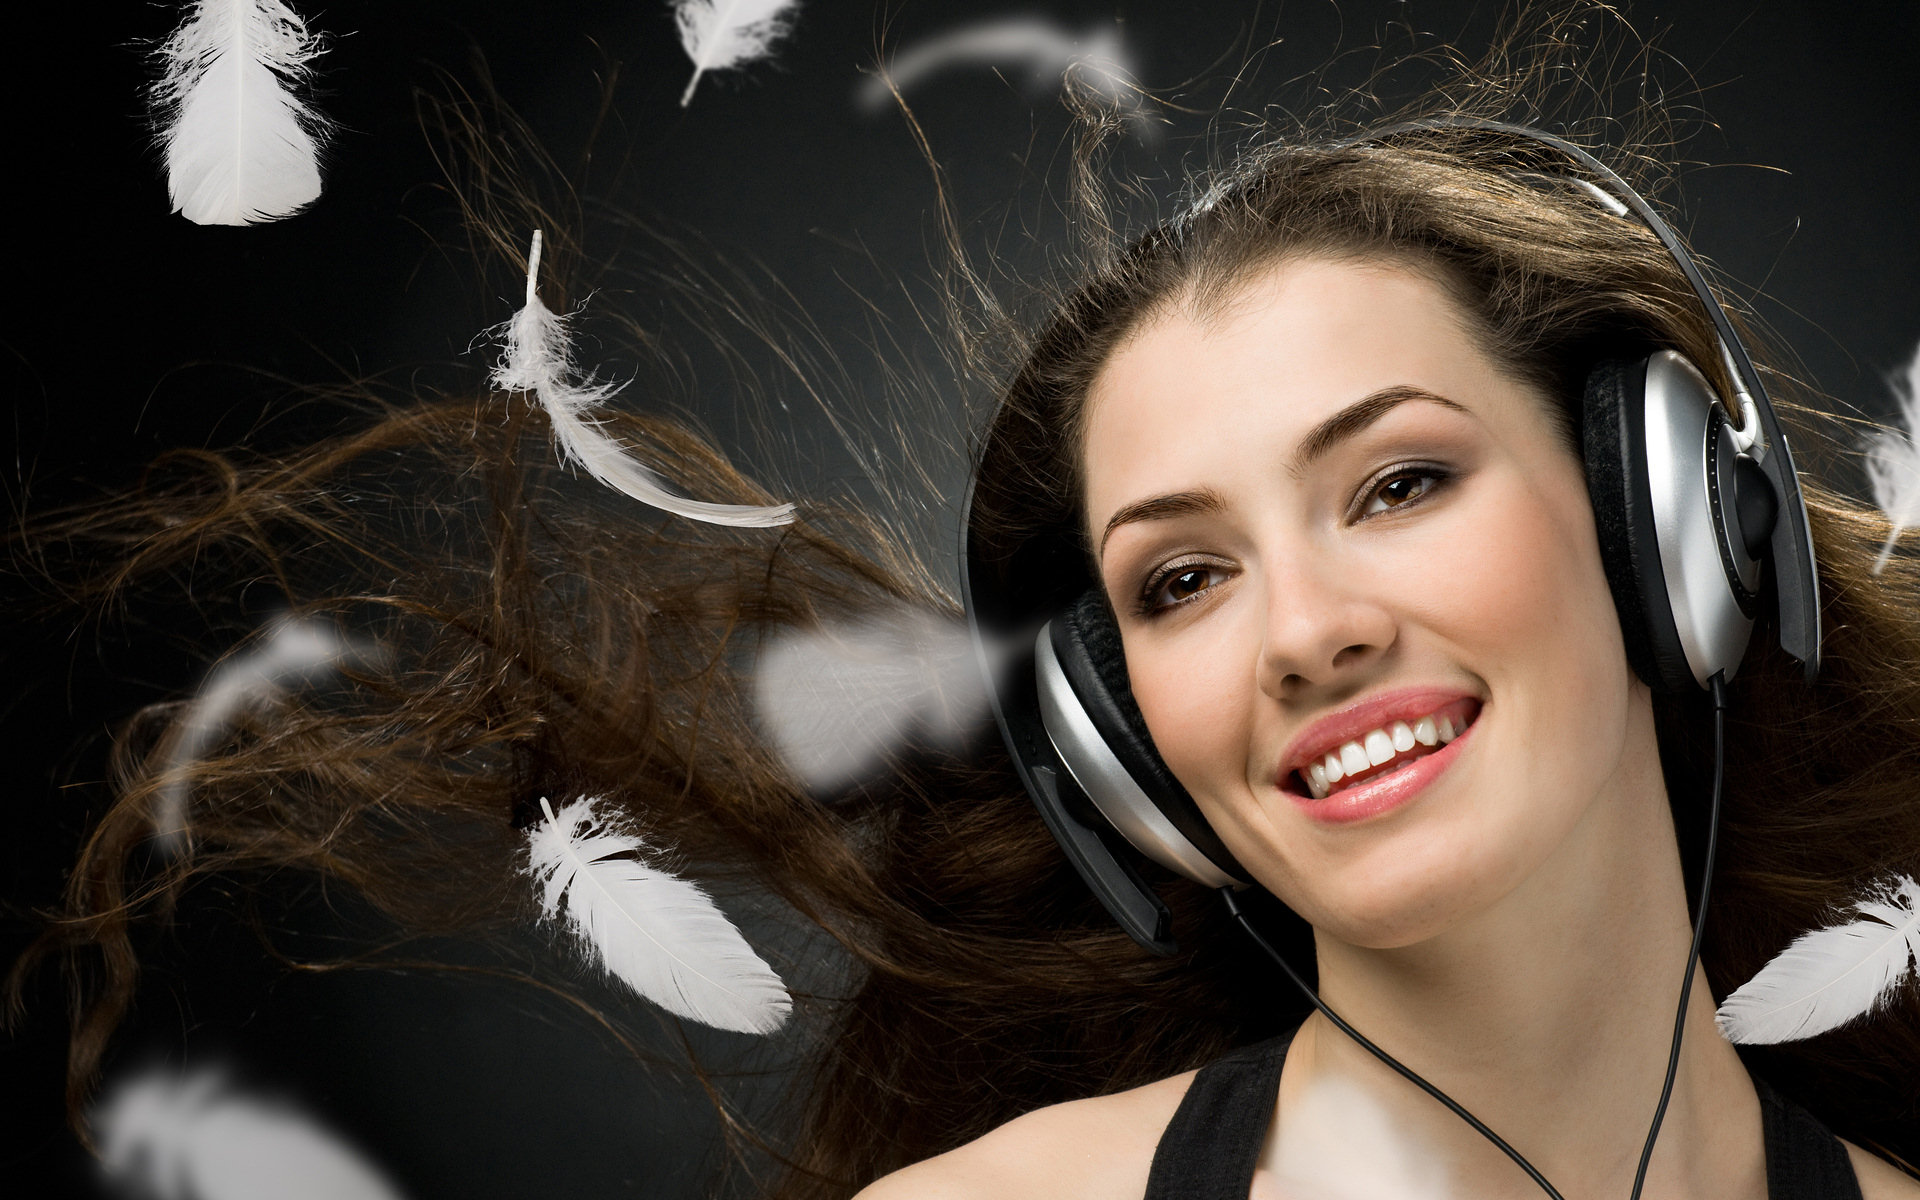 Girl Listening To Headphones Wallpaper Diann Moss Full Hd Wallpaper And Background Image